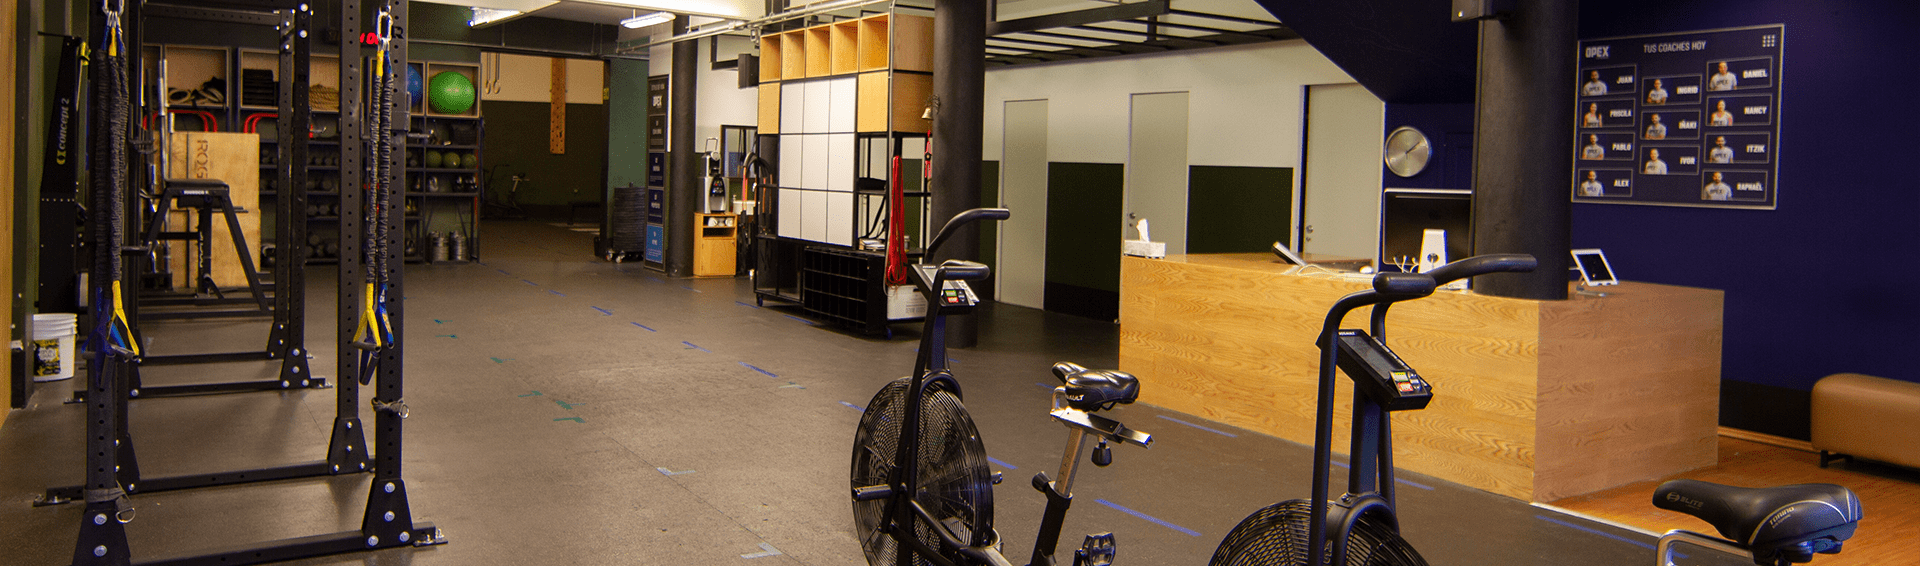 OPEX Condesa and the gyms license program